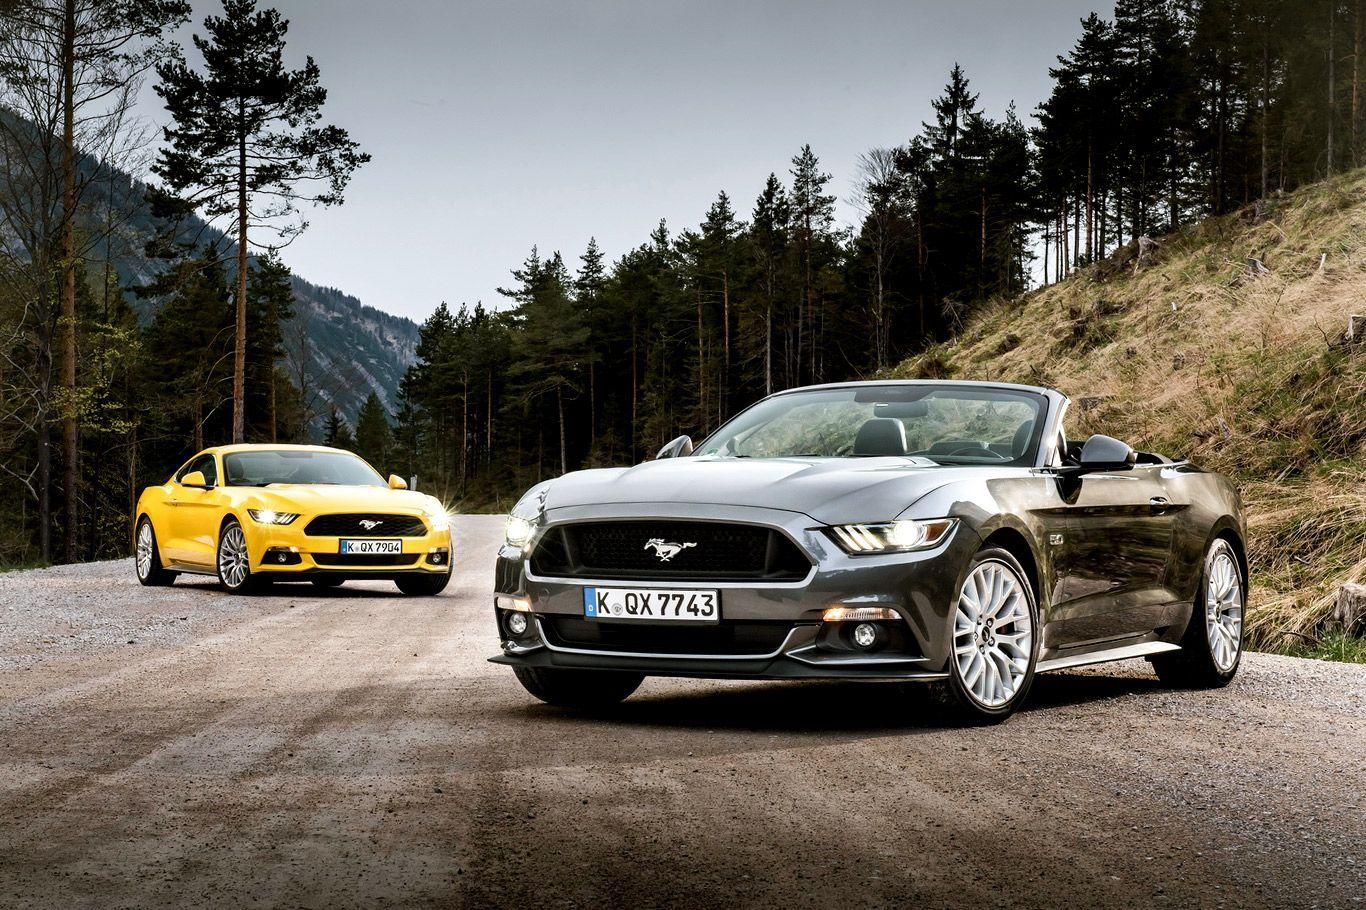 F150 Vs Sierra 2017 >> 2016 Mustang Wallpapers - Wallpaper Cave